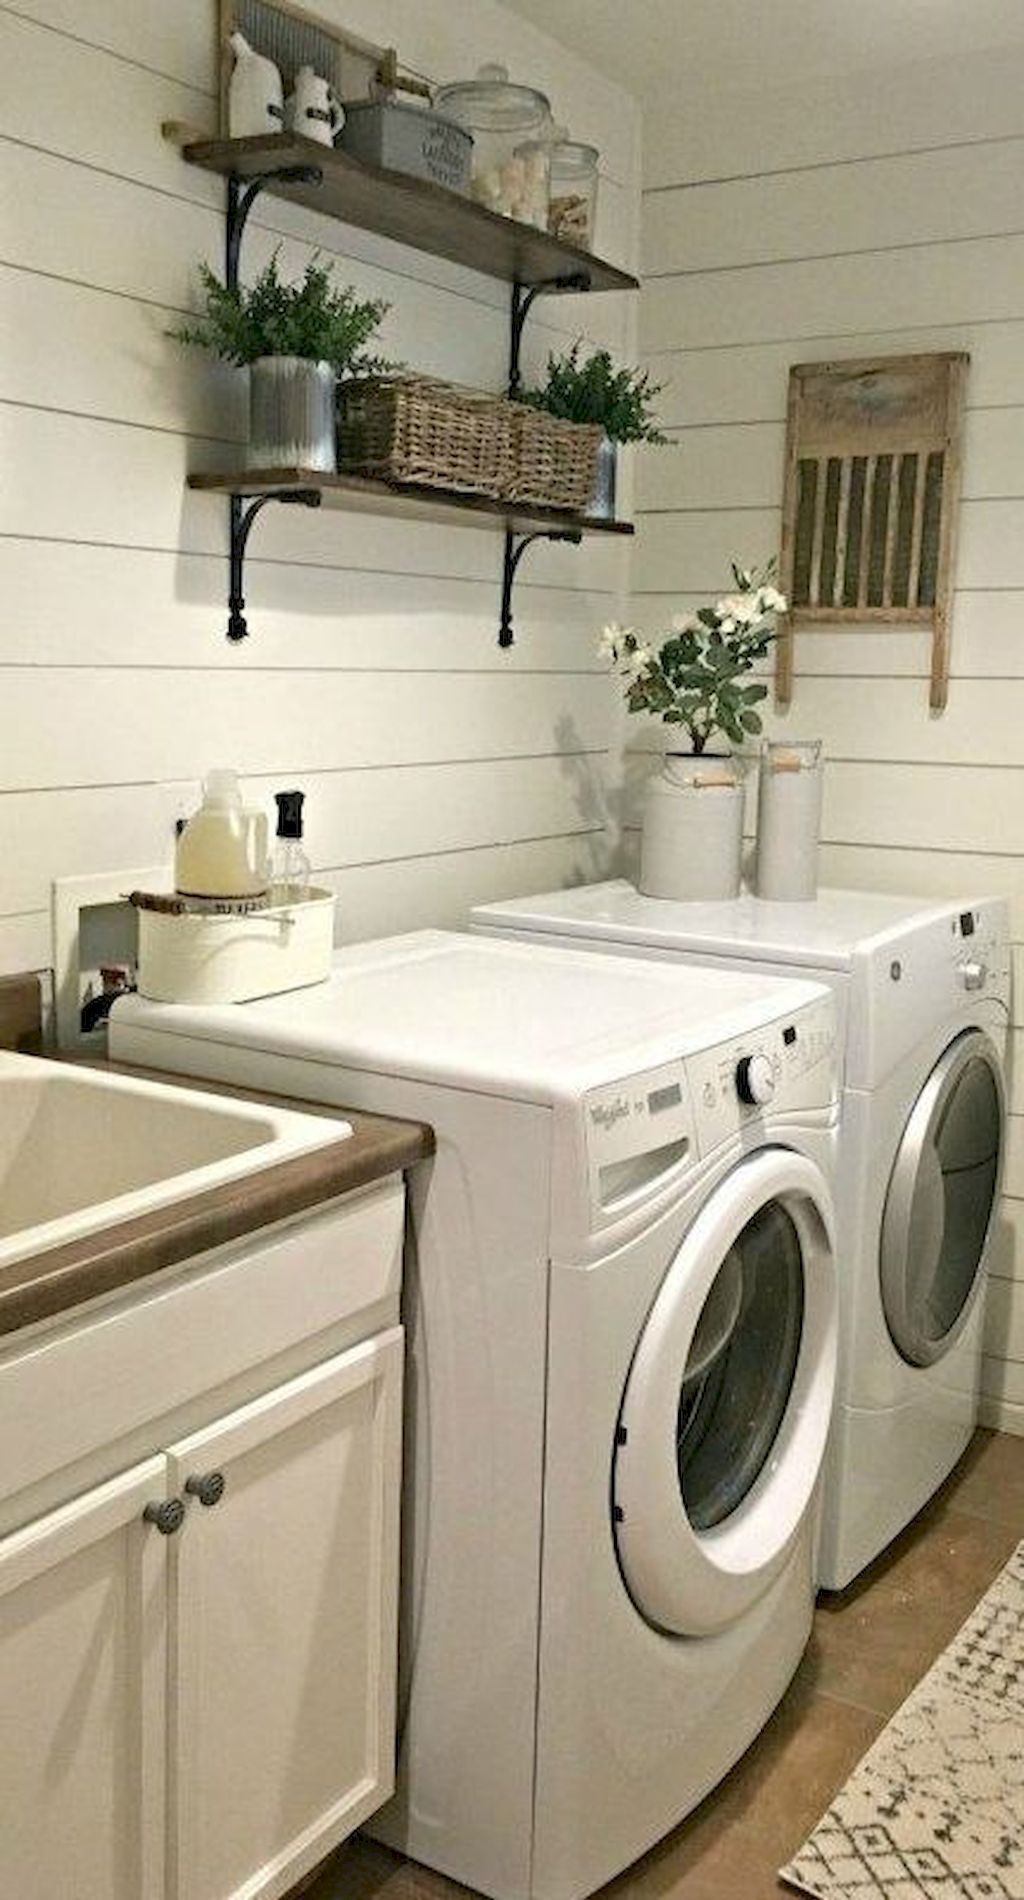 50 Rustic Farmhouse Laundry Room Decor Ideas decorapatio